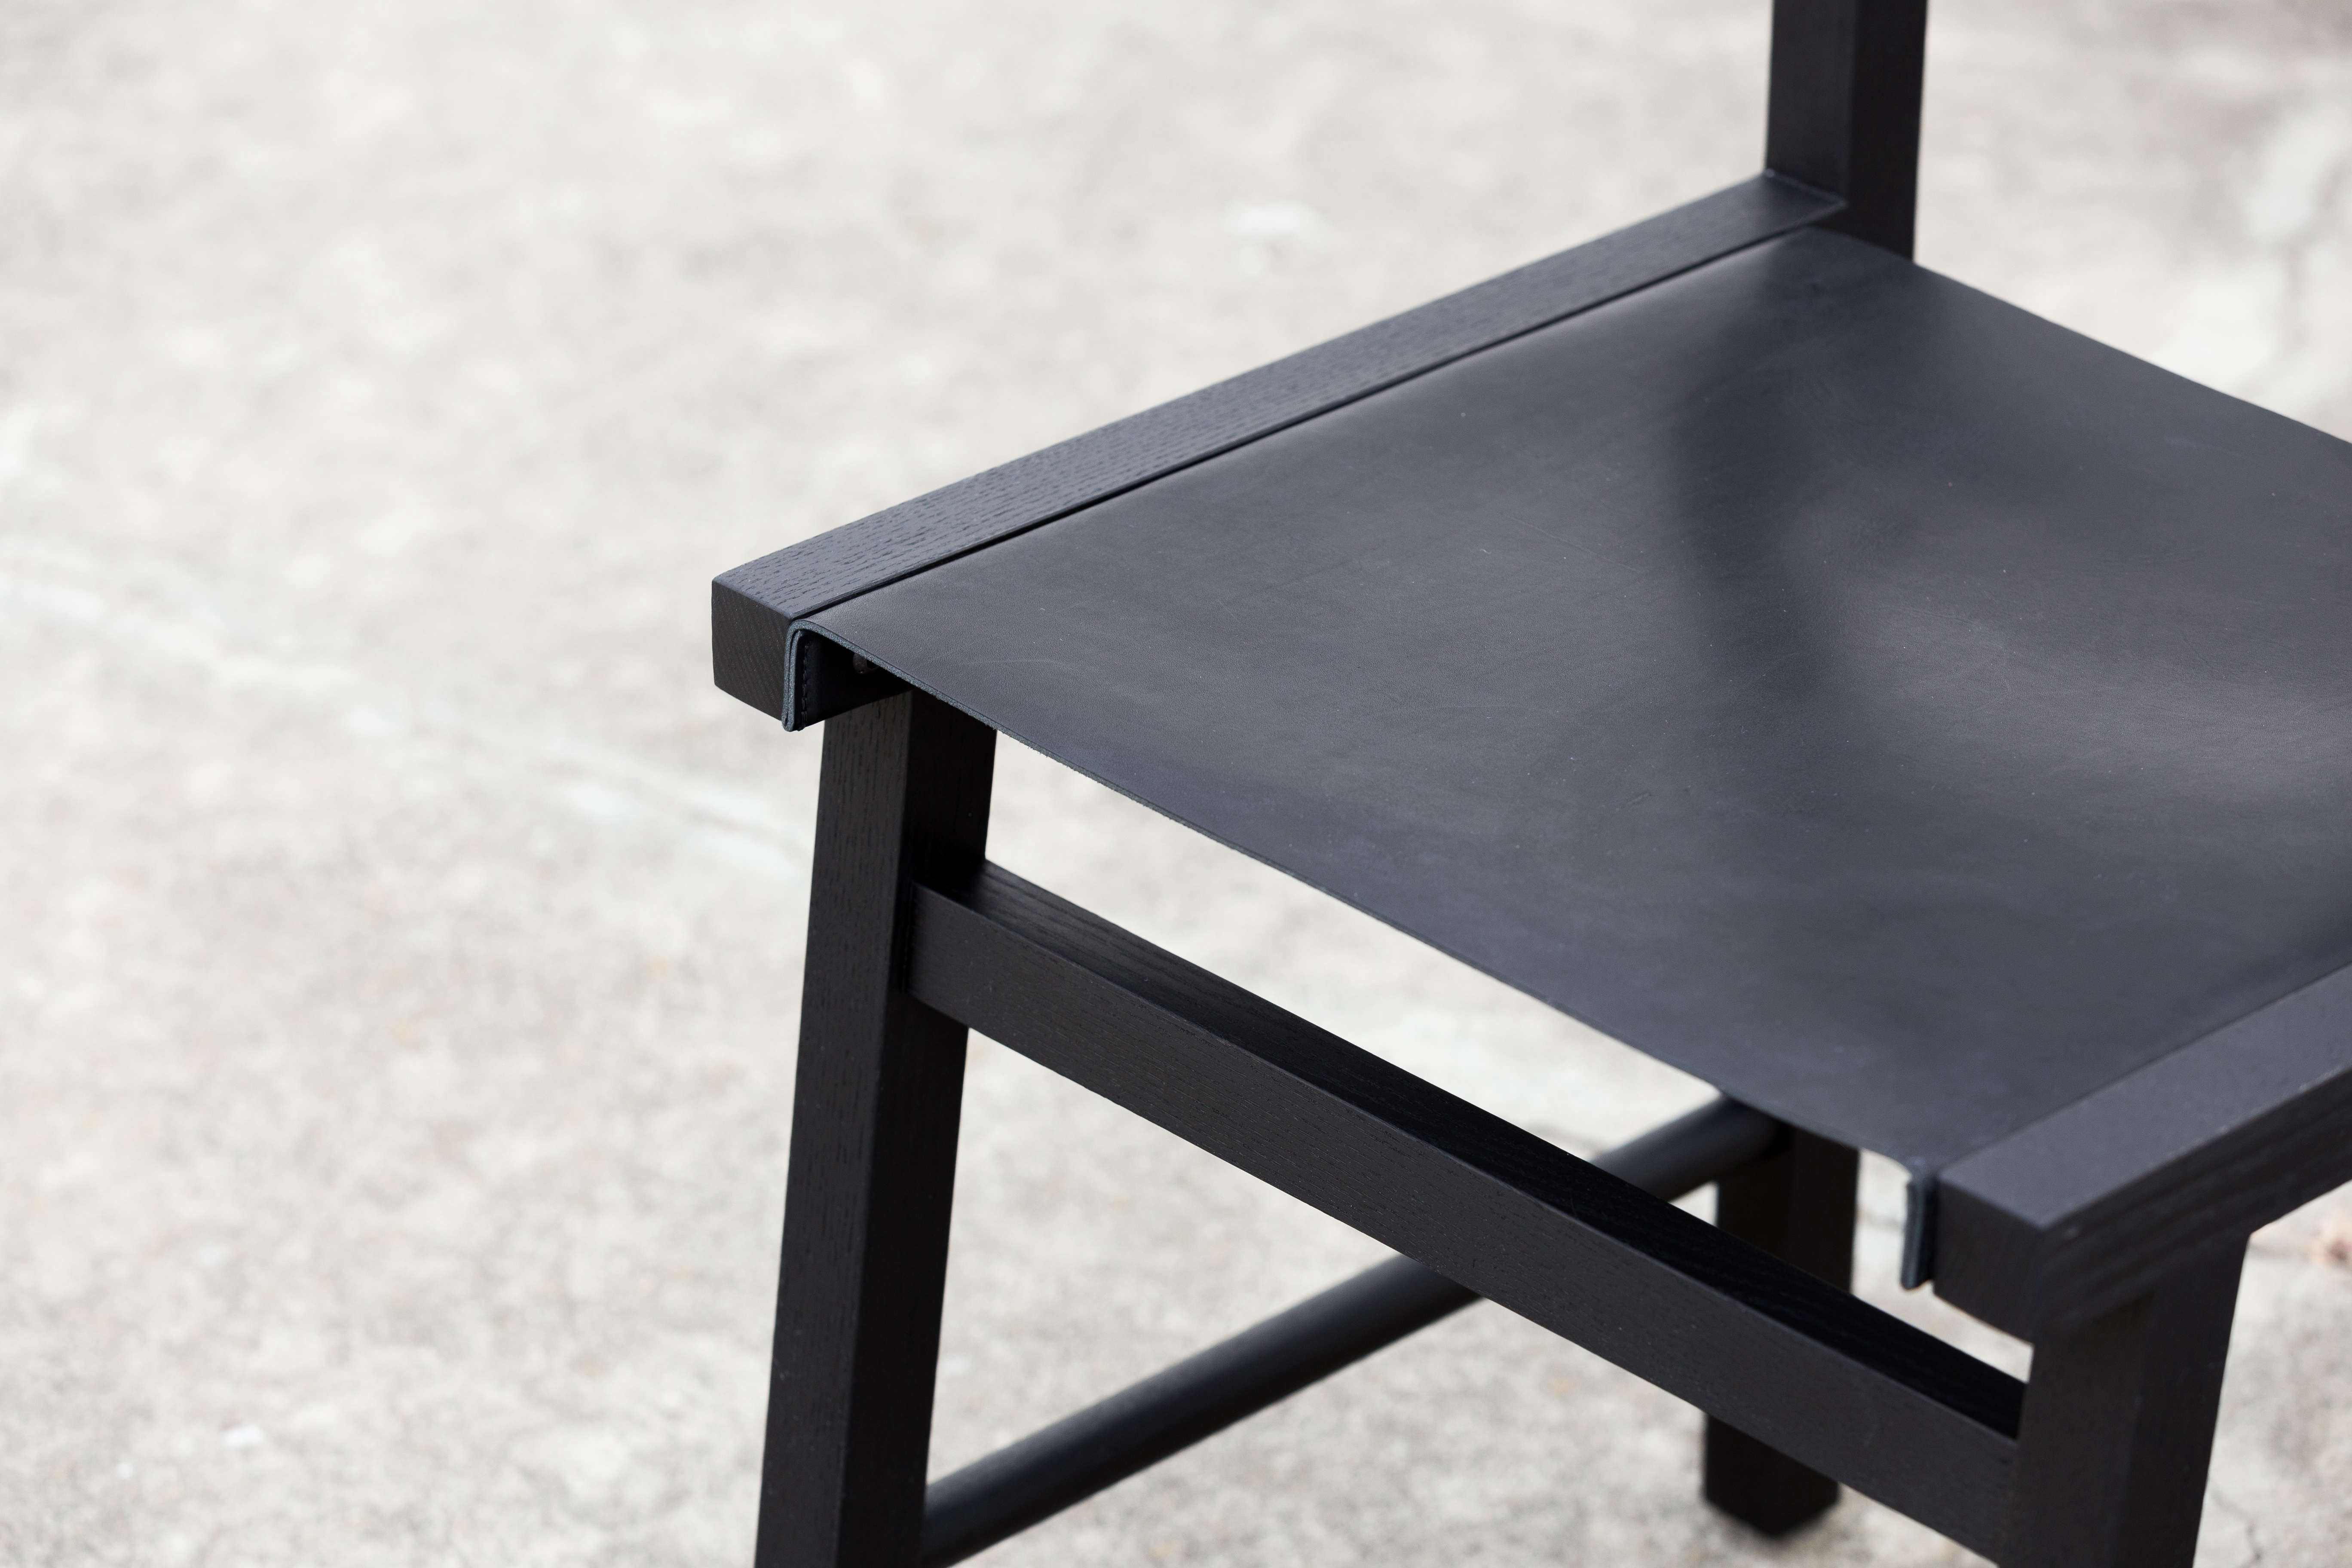 Detail of the black leather sling seat.